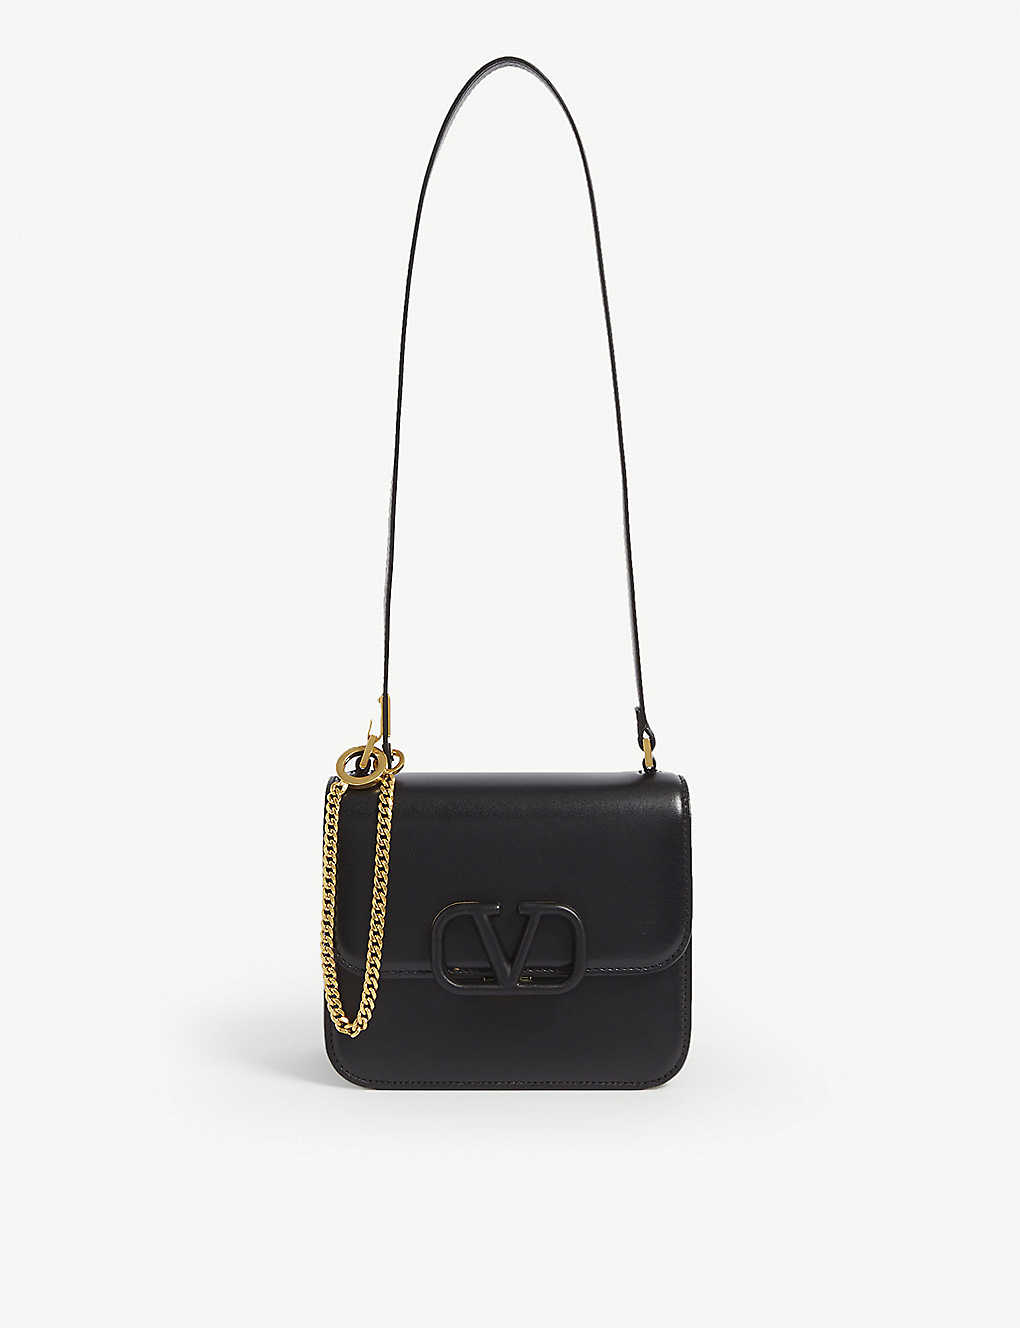 VALENTINO GARAVANI: VSLING leather shoulder bag